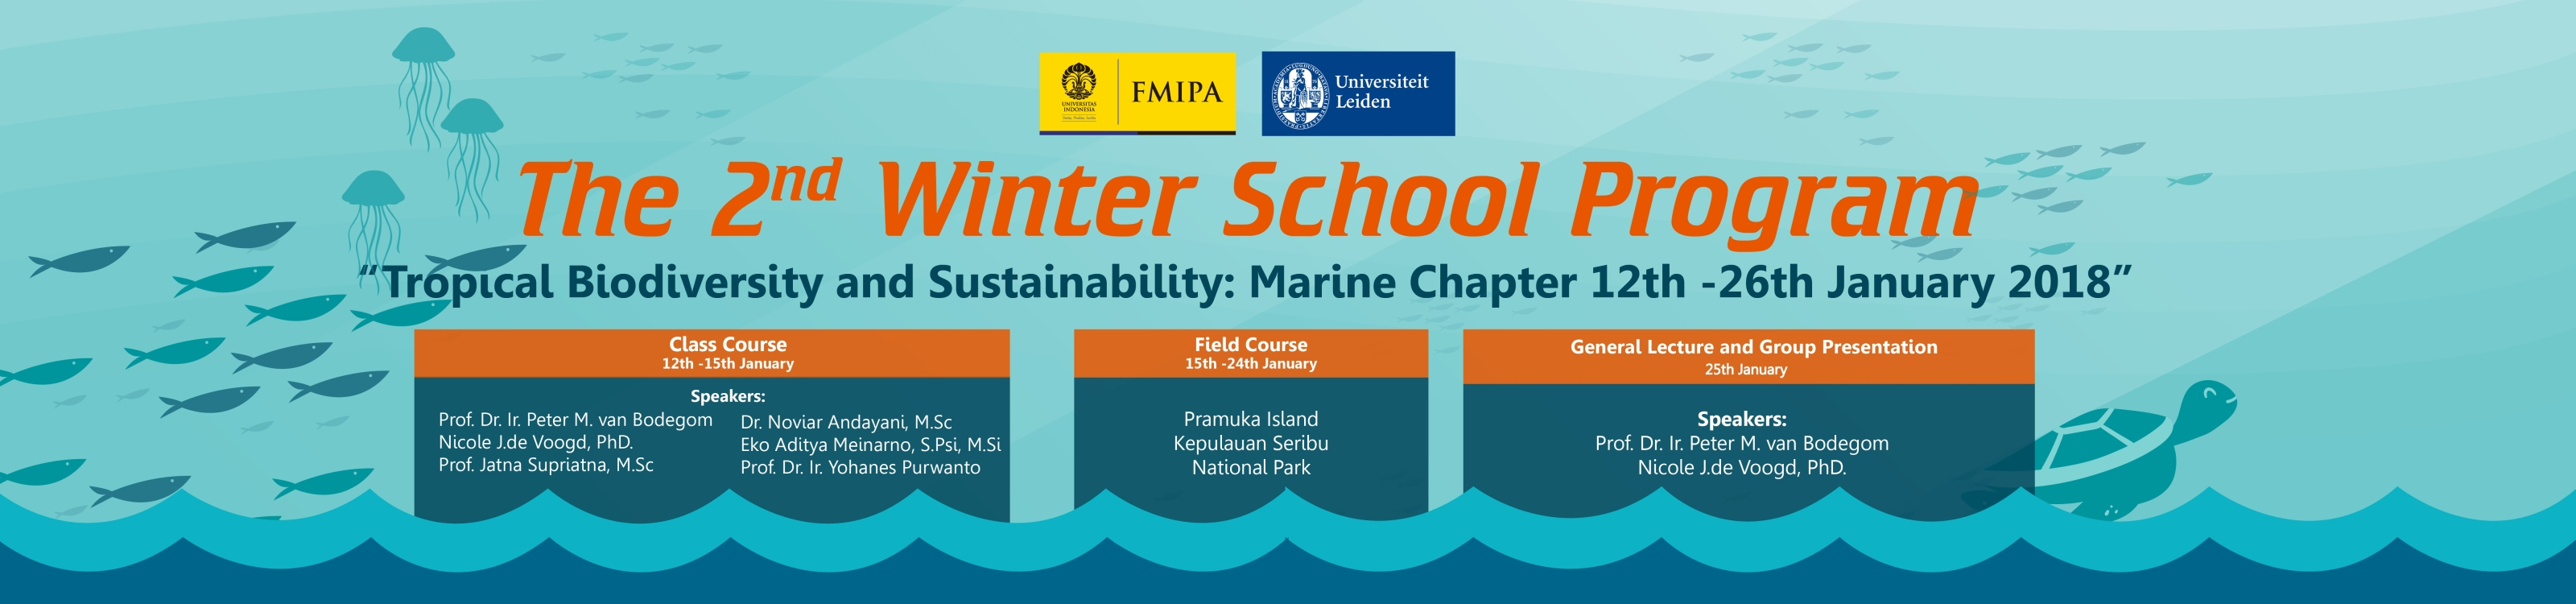 Web-Banner-Winter-School-02-02-v1